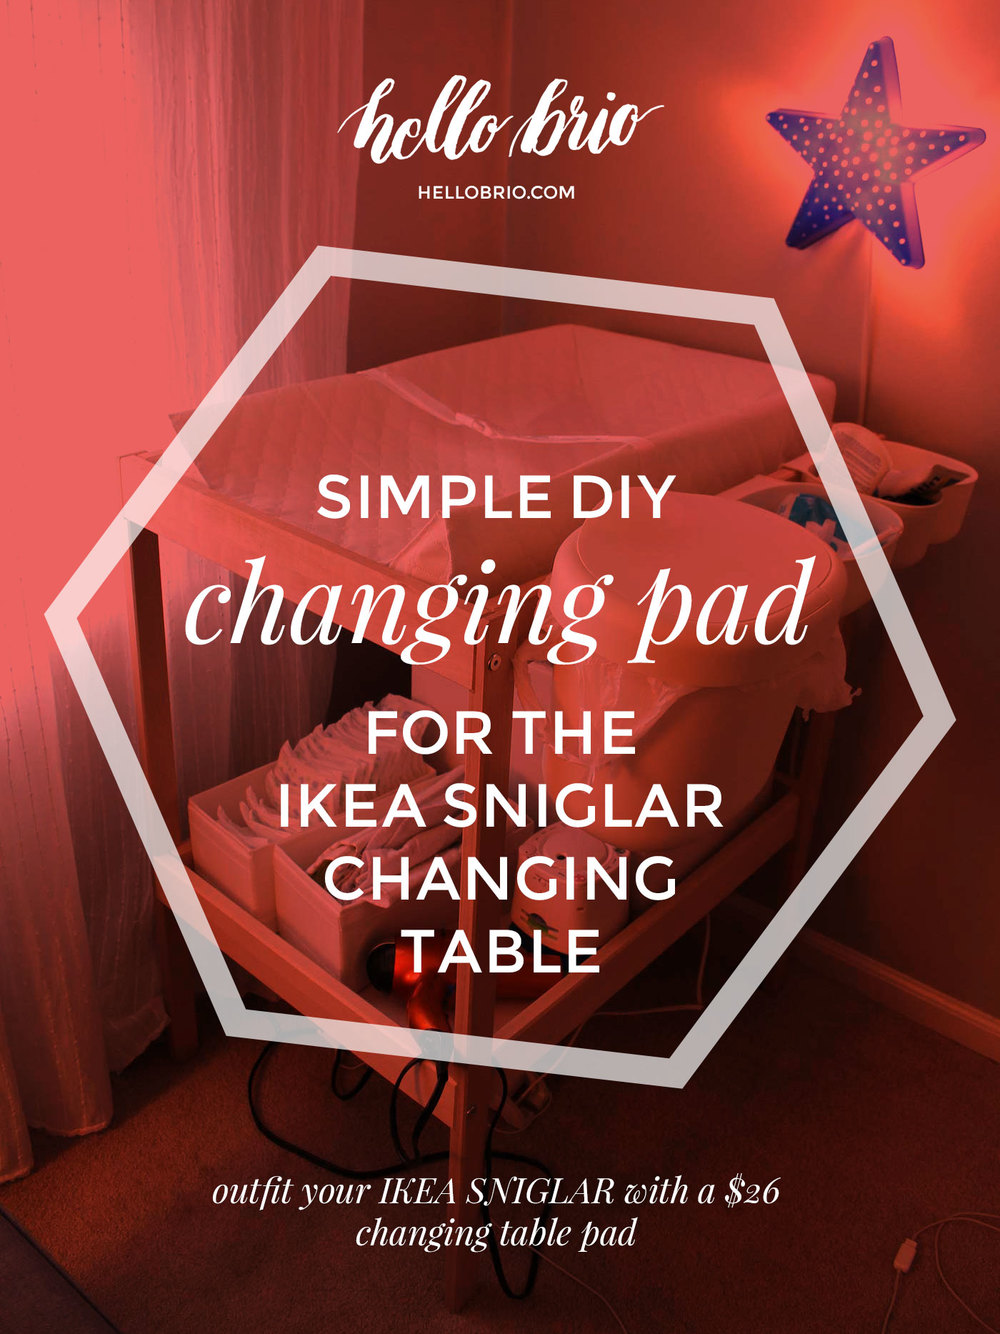 Easy baby DIY project for a changing table pad for the IKEA SNIGLAR